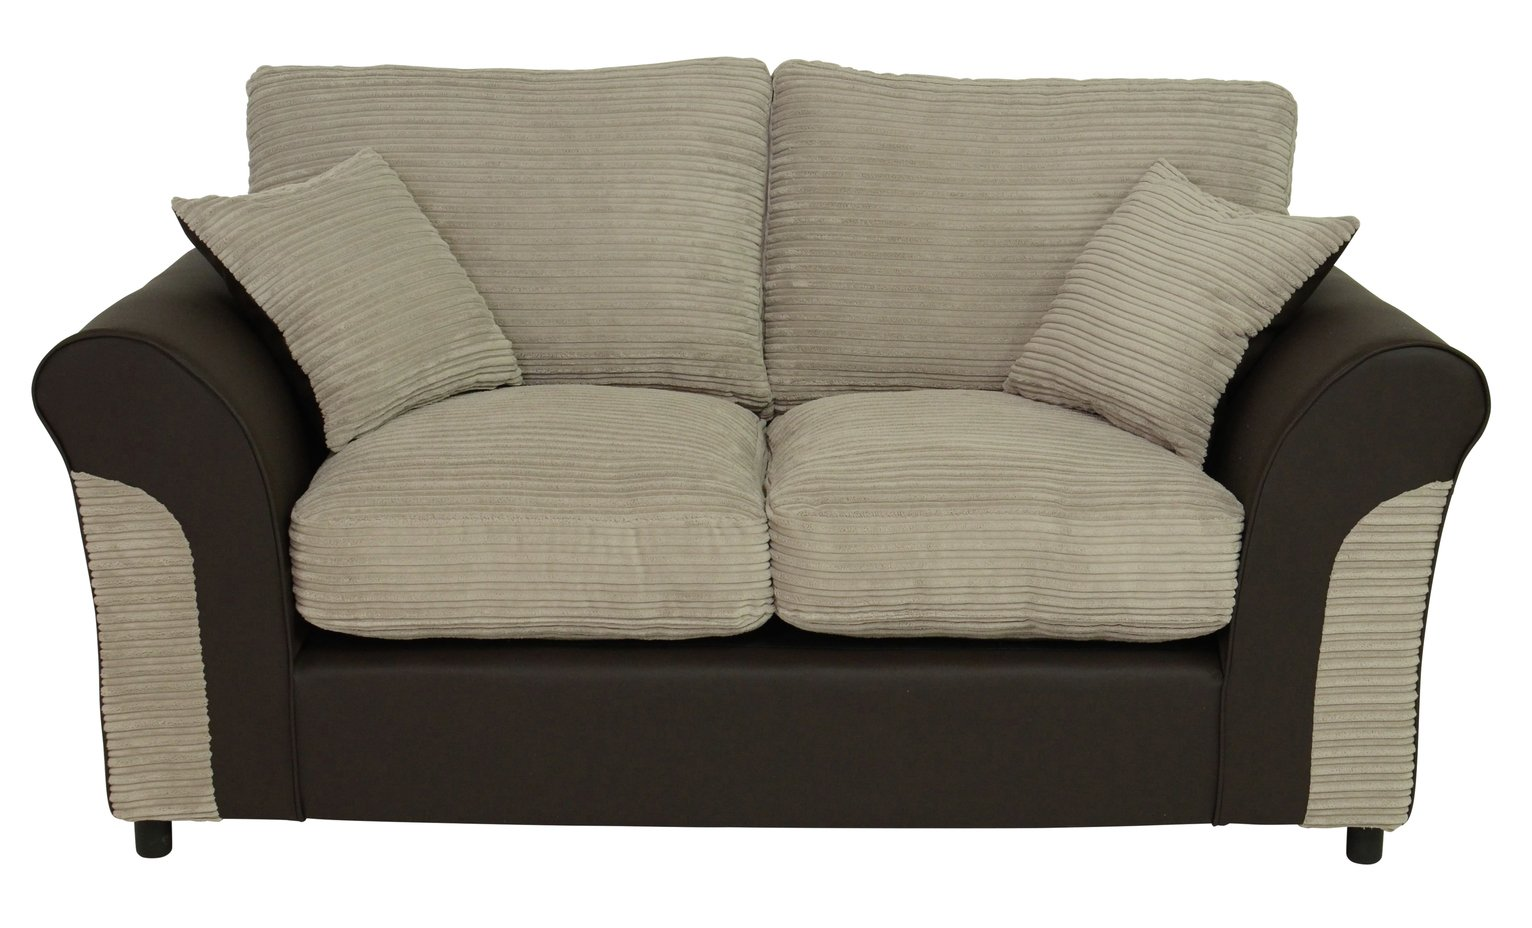 Argos Home Harry 2 Seater Fabric Sofa bed - Natural